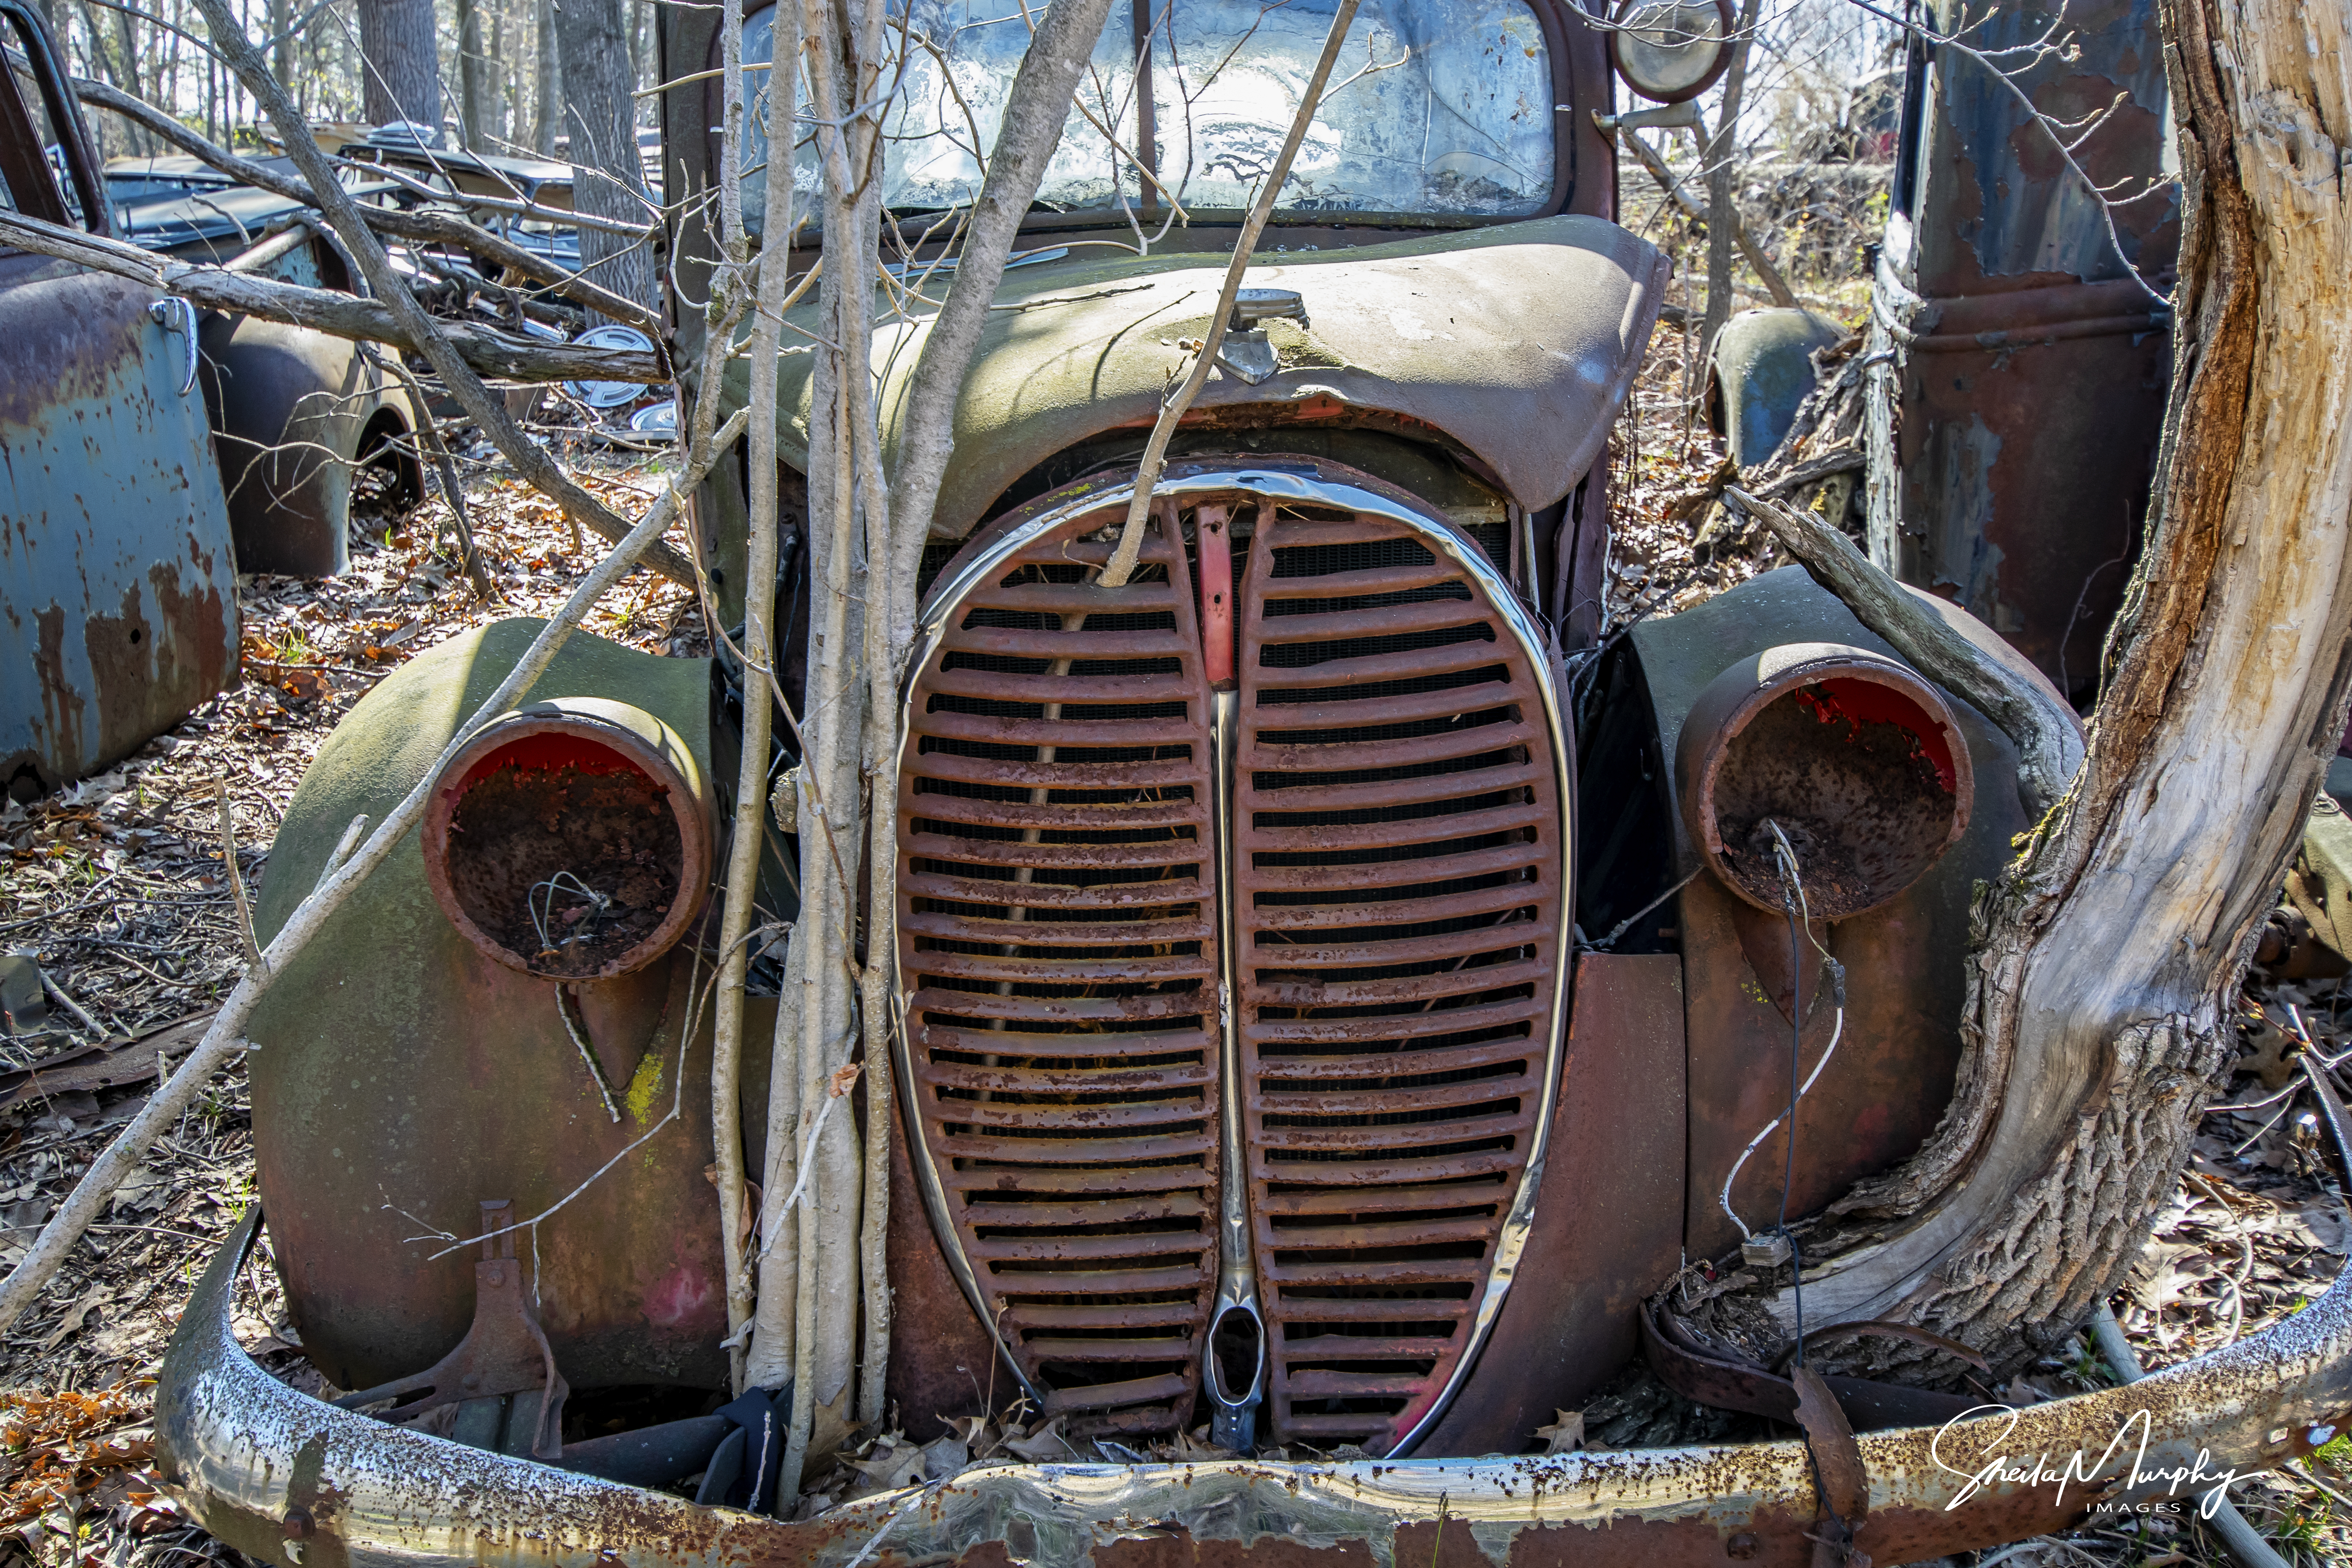 Finding Beauty in the Junkyard… a Gallery by Sheila Murphy